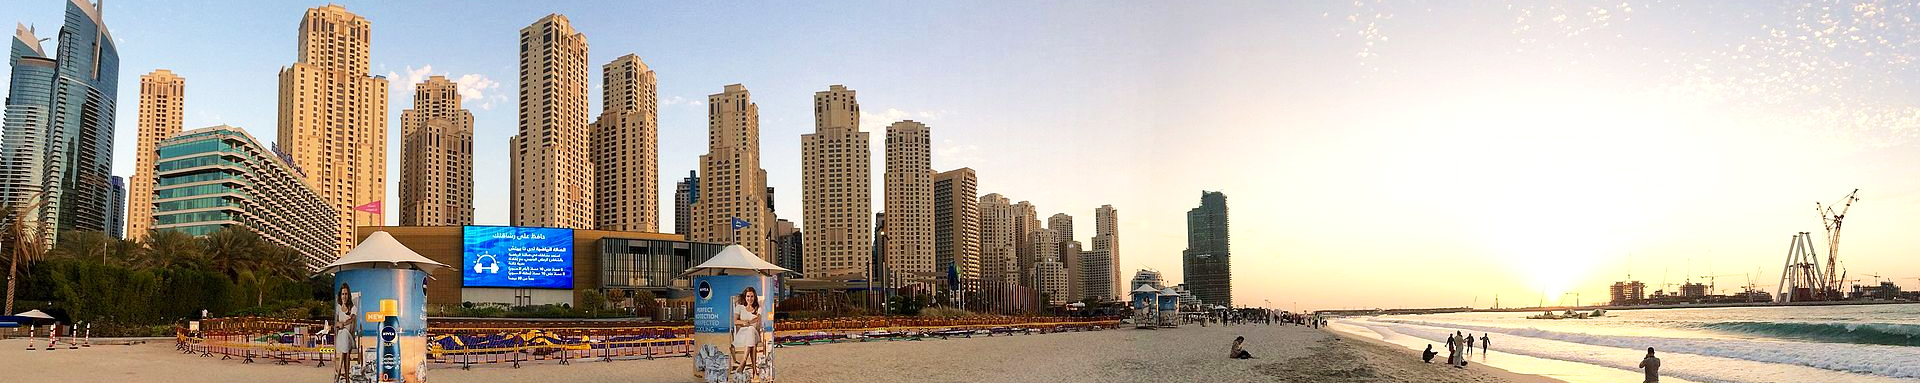 JBR Apartments for Sale and Rent in Dubai